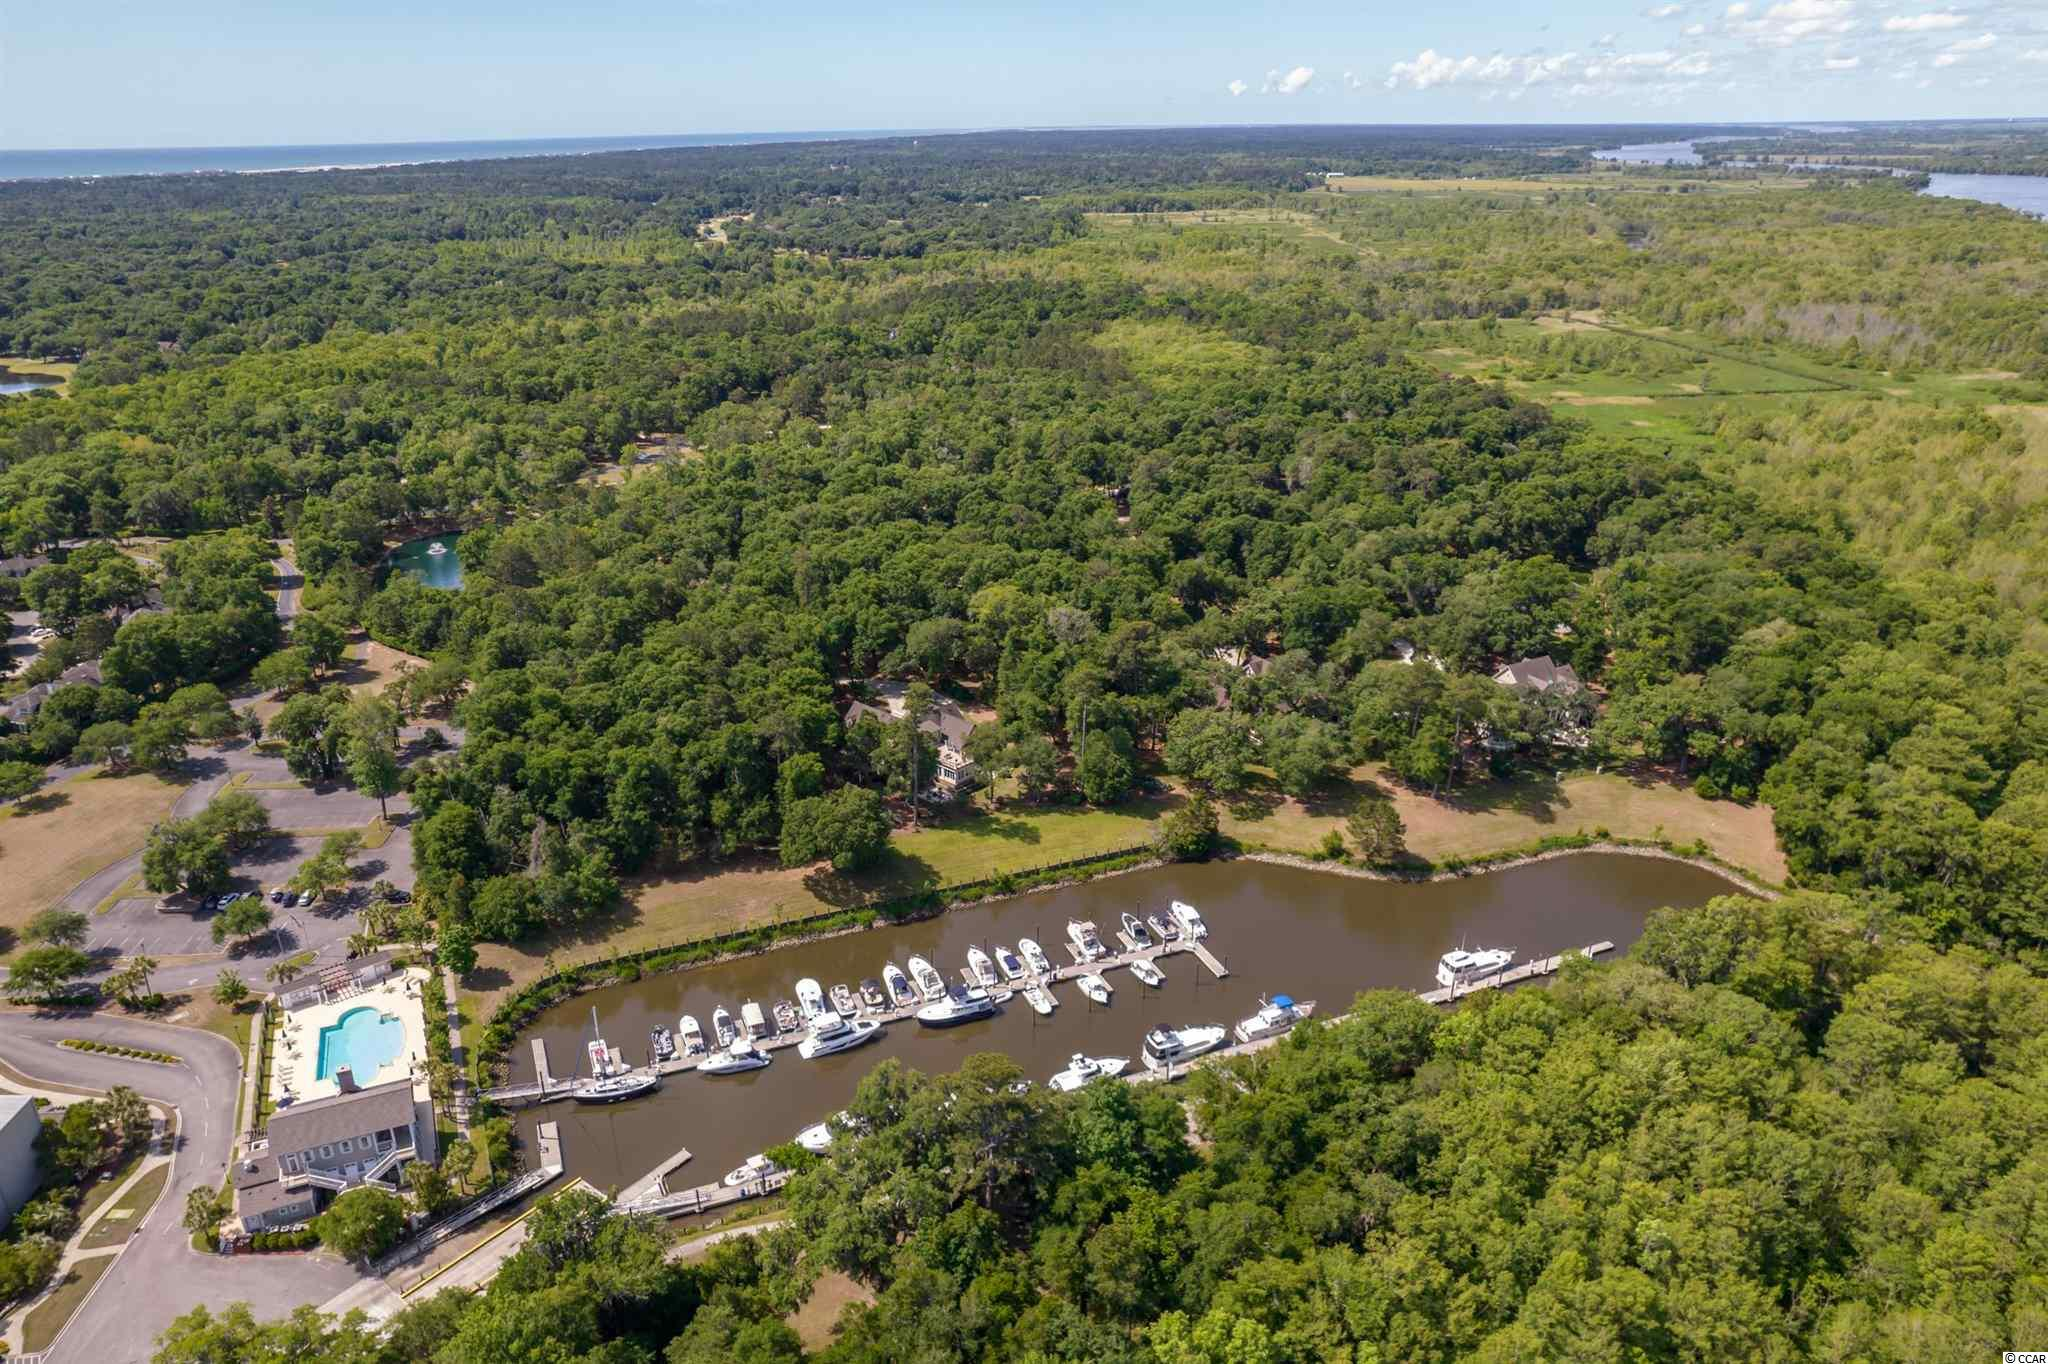 Located in the Island Estate section of the prestigious gated golf and marina community of The Reserve in Pawleys Island, this beautiful 1.45 acre marina-view cul-de-sac lot is ready for you to build your dream home!  Community amenities include 24-hour security, manned entrance gate, tennis courts, trails for walking and jogging, private beach access through the golf cart path and ride to Litchfield by the Sea and all of their amenities, with optional membership to the Members Club, marina and golf course. Membership to the private Reserve Harbor Yacht Club includes access to swimming pool plus dry storage for your boat, wet slips and deep water access for larger boats – all just a short golf cart ride away! The Reserve Golf Club features a Greg Norman golf course and fine dining. Close to all amenities that the Pawleys Island area has to offer.